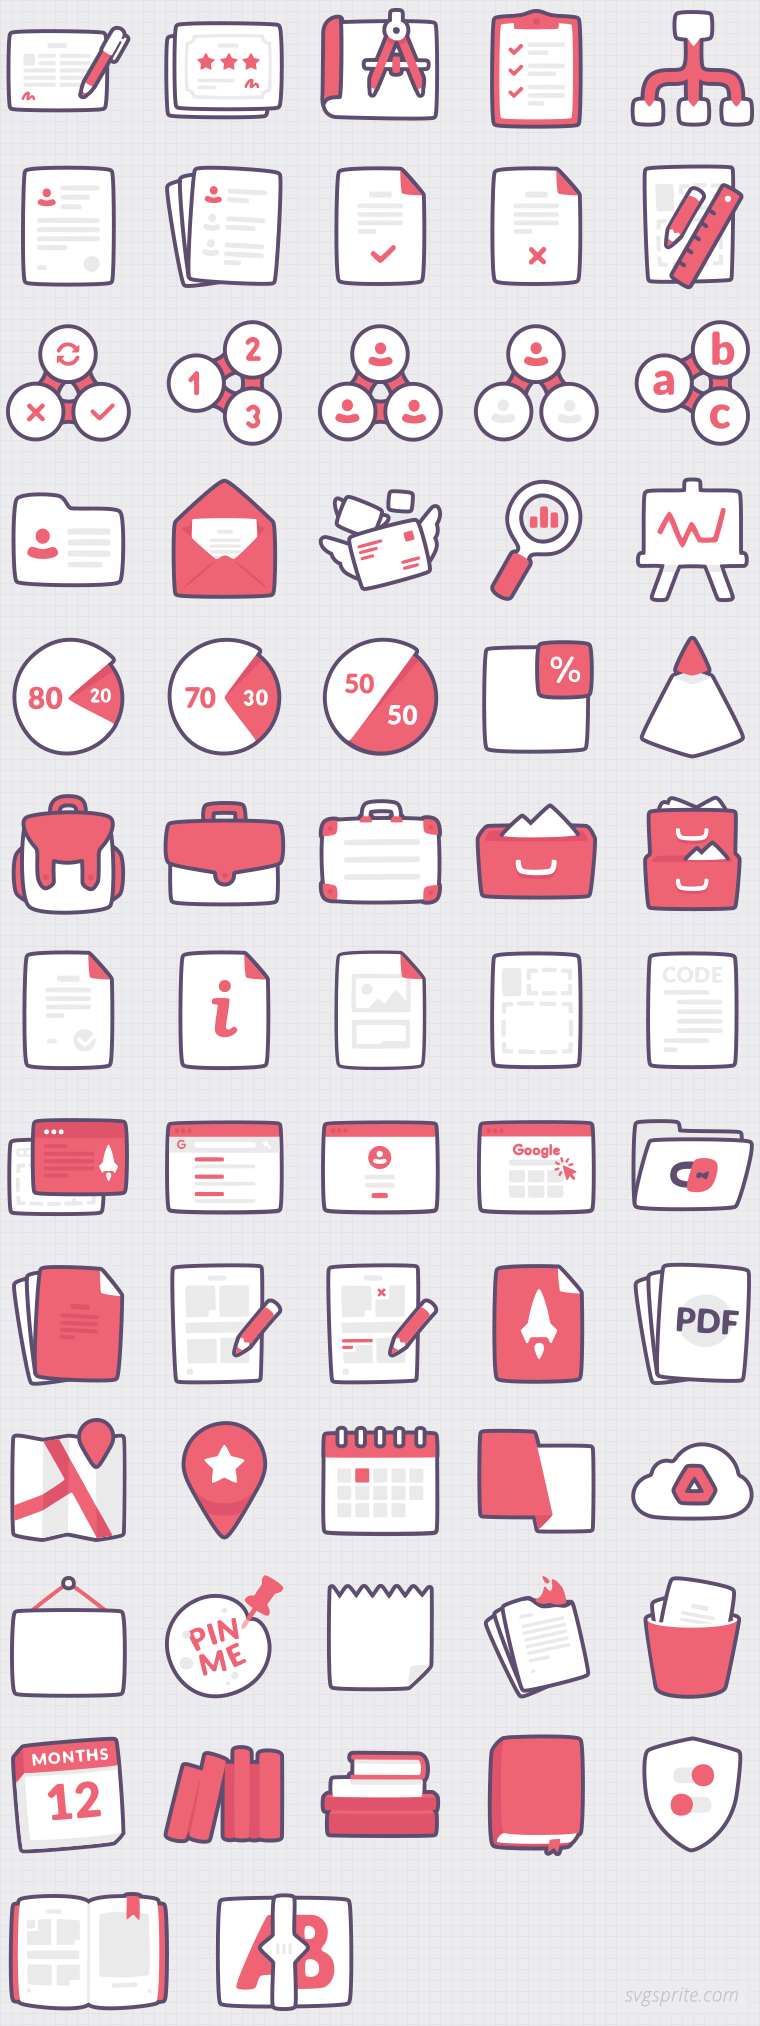 Data managment icons. Certificate, checklist, mindmap, prototyping, team, school-bag, business, search, secret, folder, placemark, calendar, books